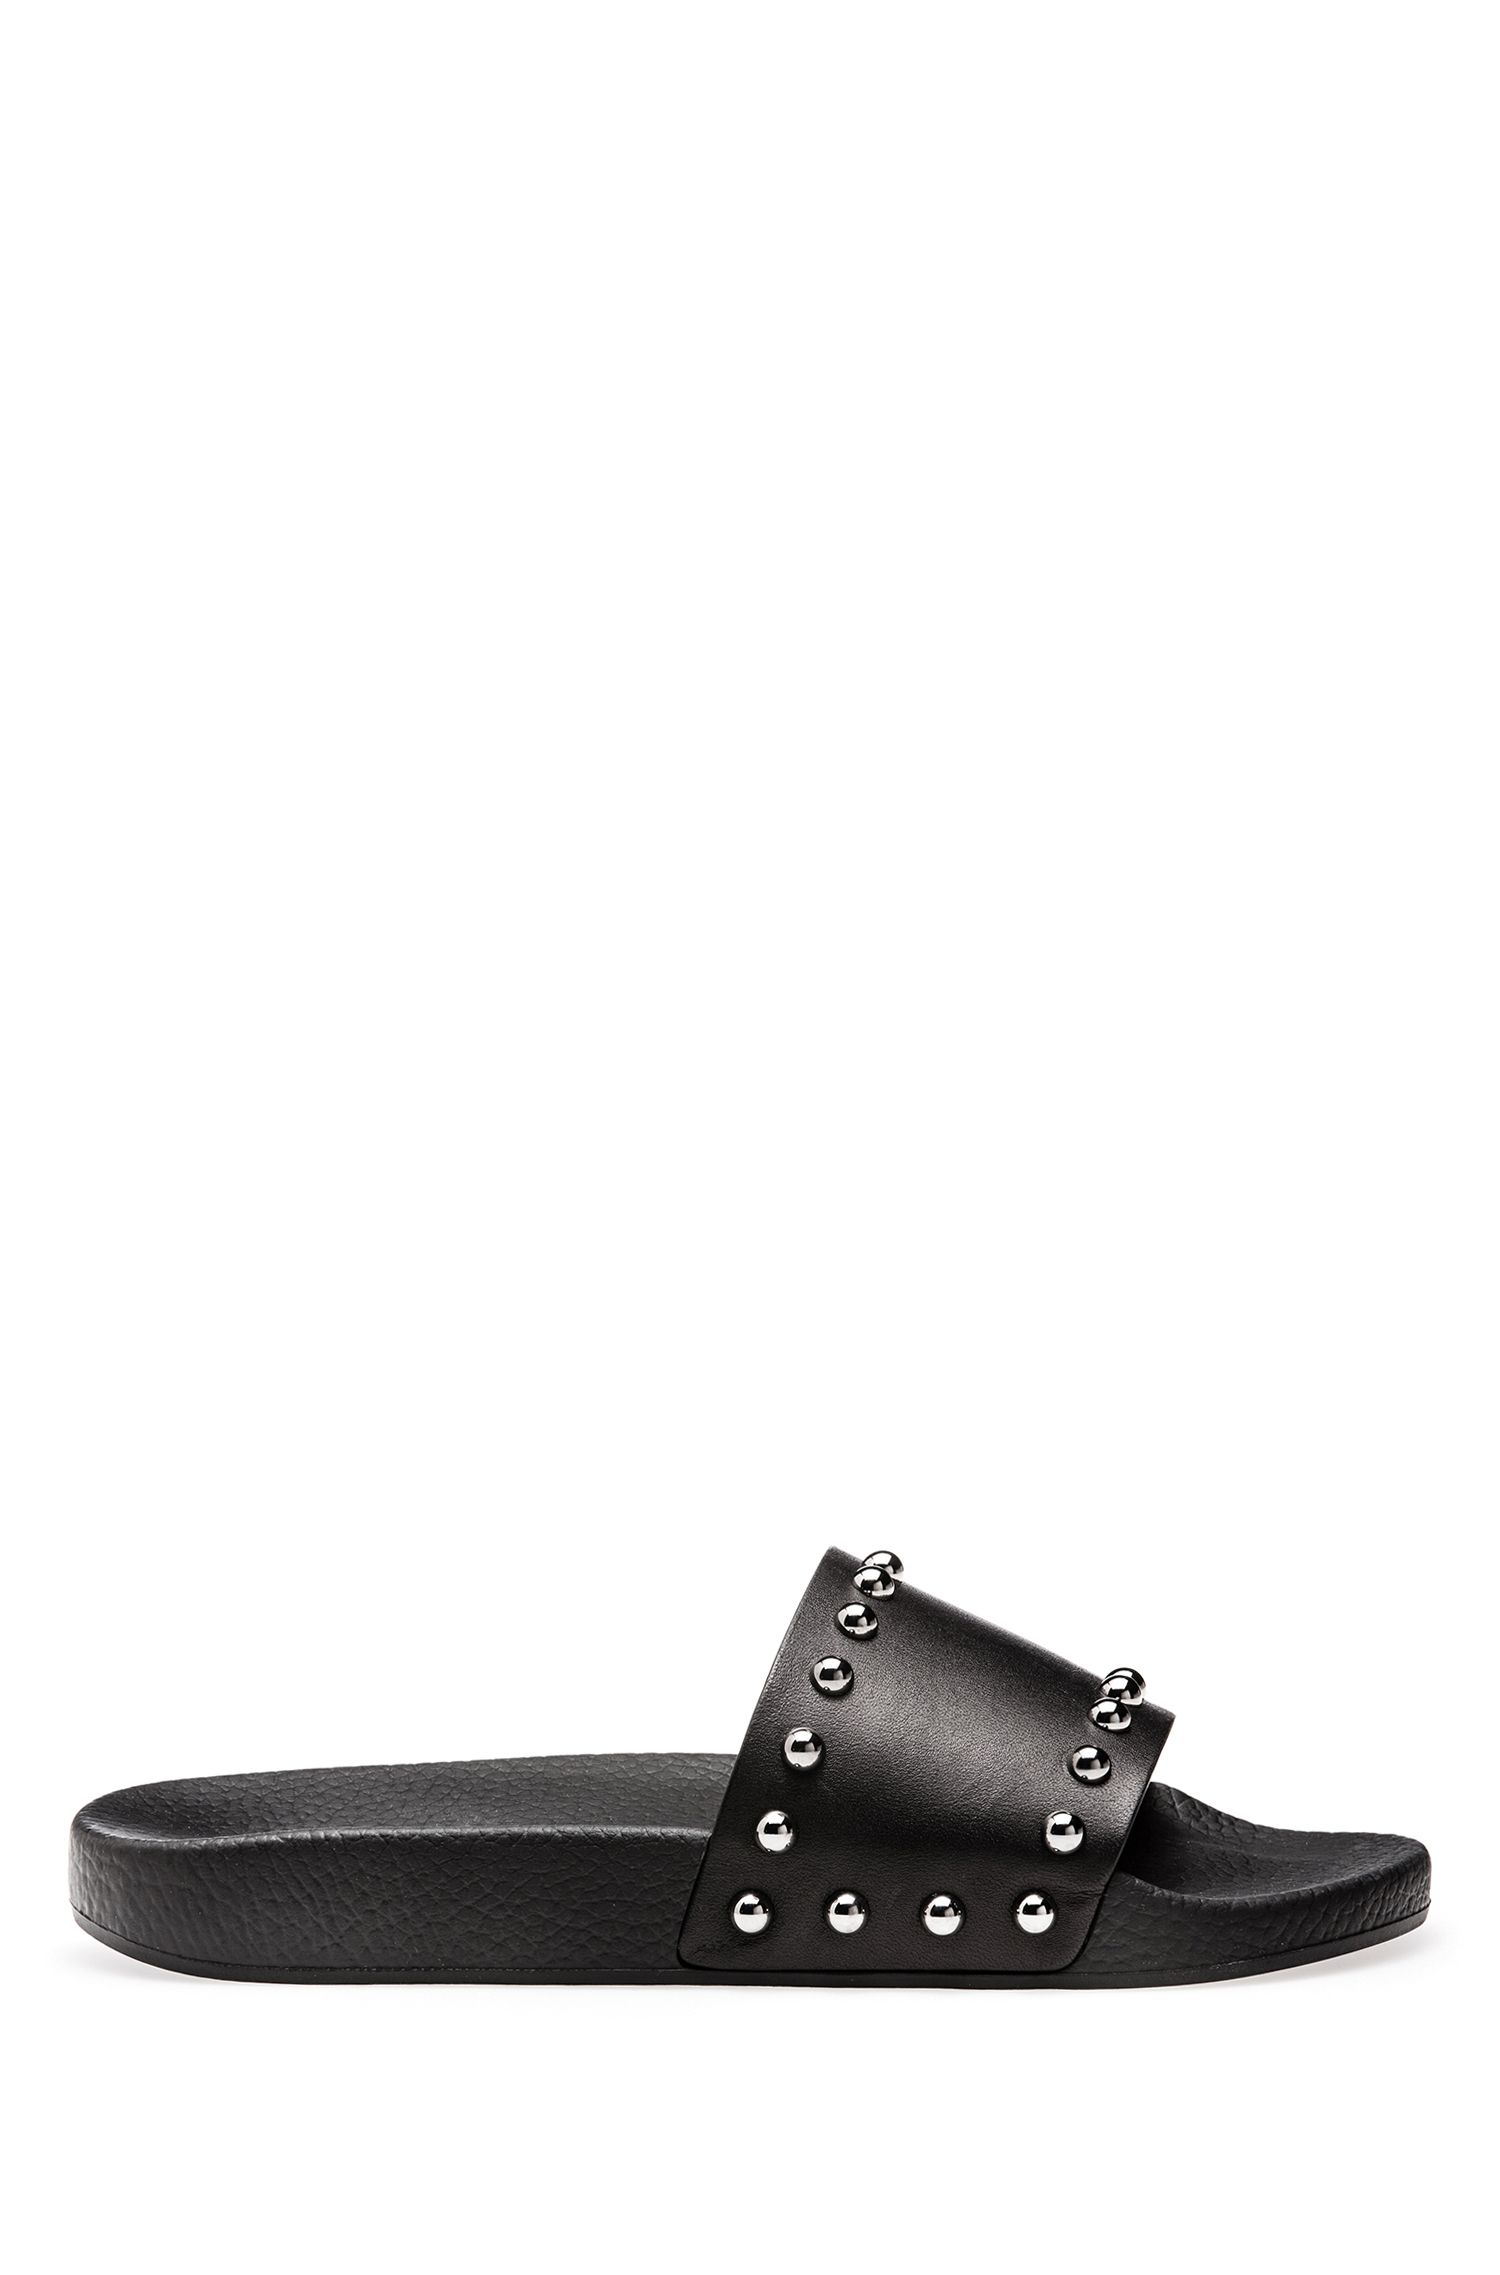 Leather sliders with polished dome studs